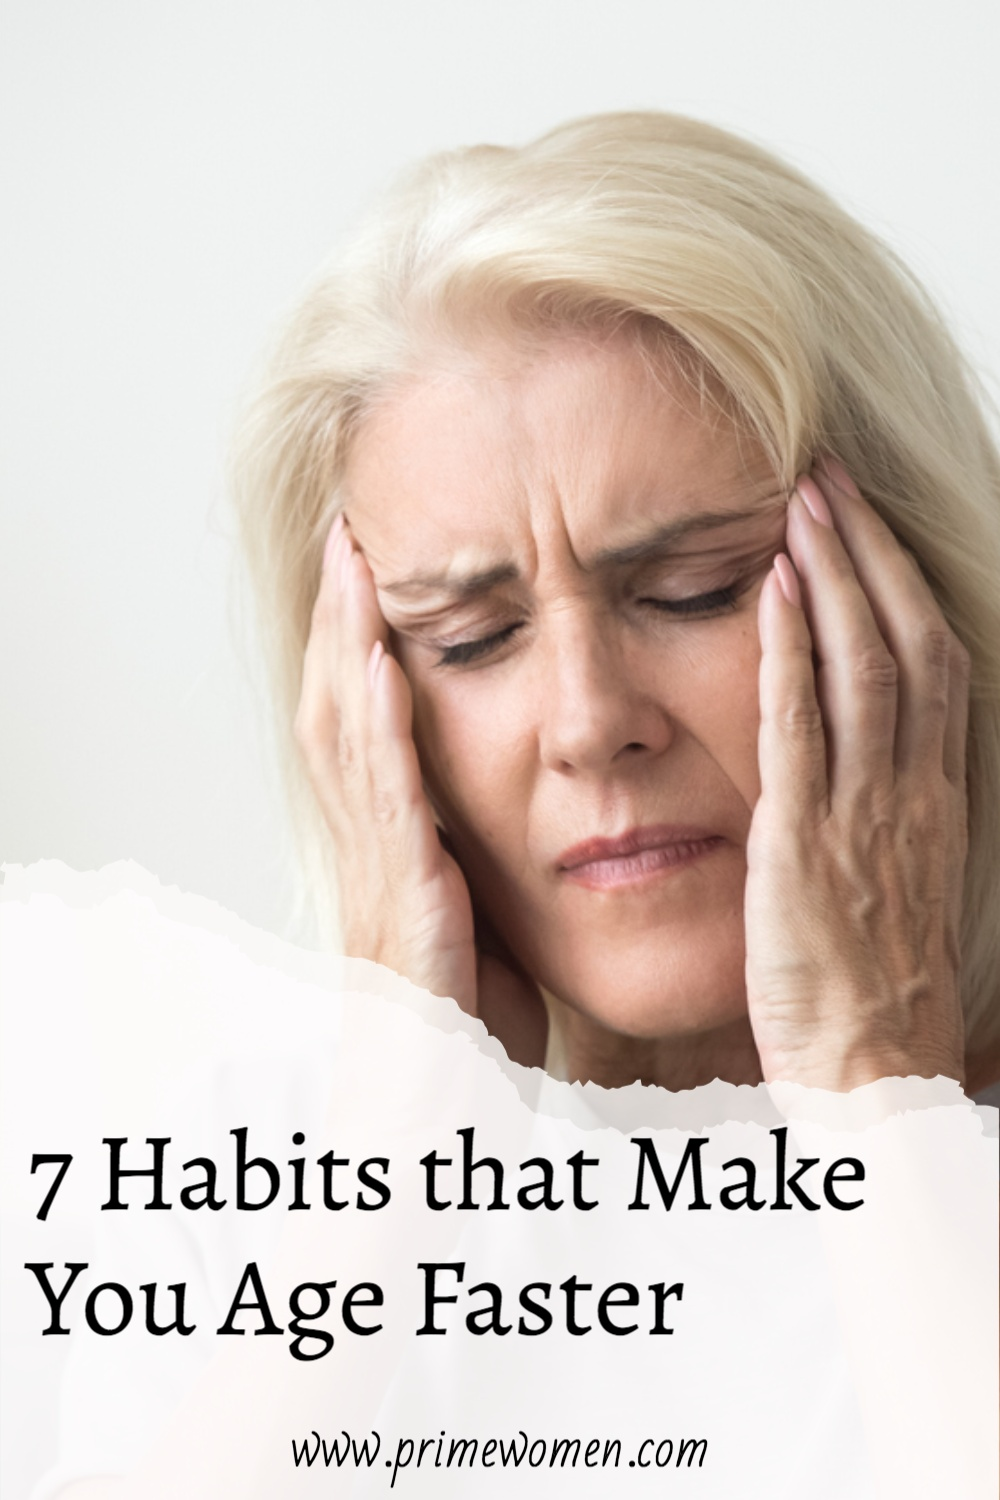 7 Habits that make you age faster